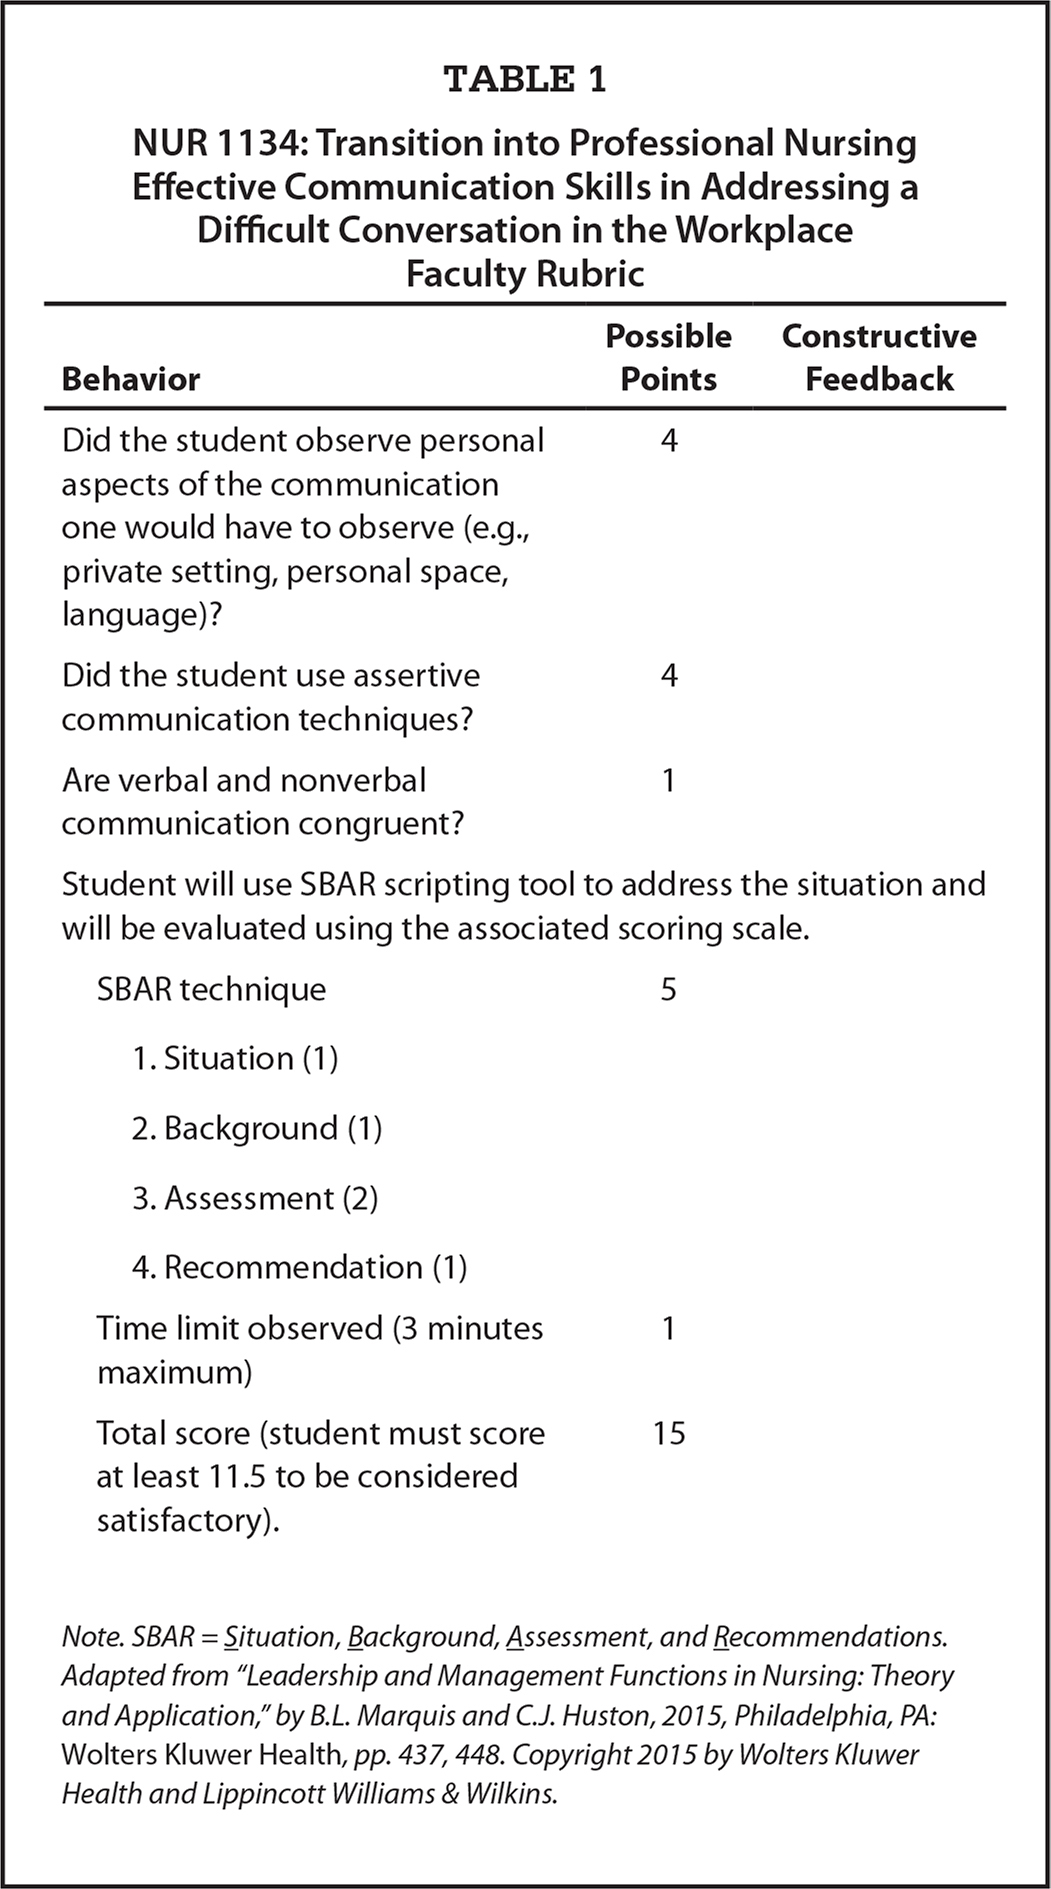 NUR 1134: Transition into Professional Nursing Effective Communication Skills in Addressing a Difficult Conversation in the Workplace Faculty Rubric